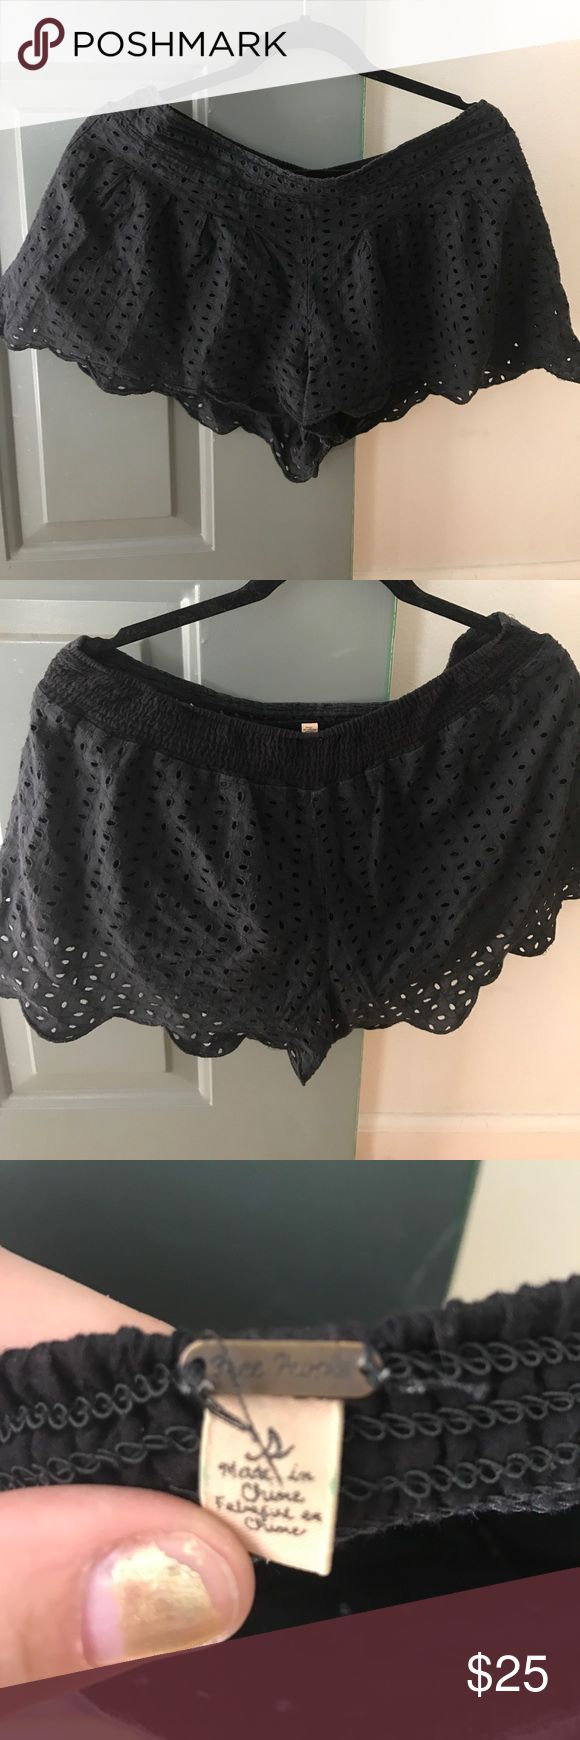 Free People black Eyelet shorts Scalloped hem lightweight great for spring/summer. Elastic waistband. VGUC Free People Shorts